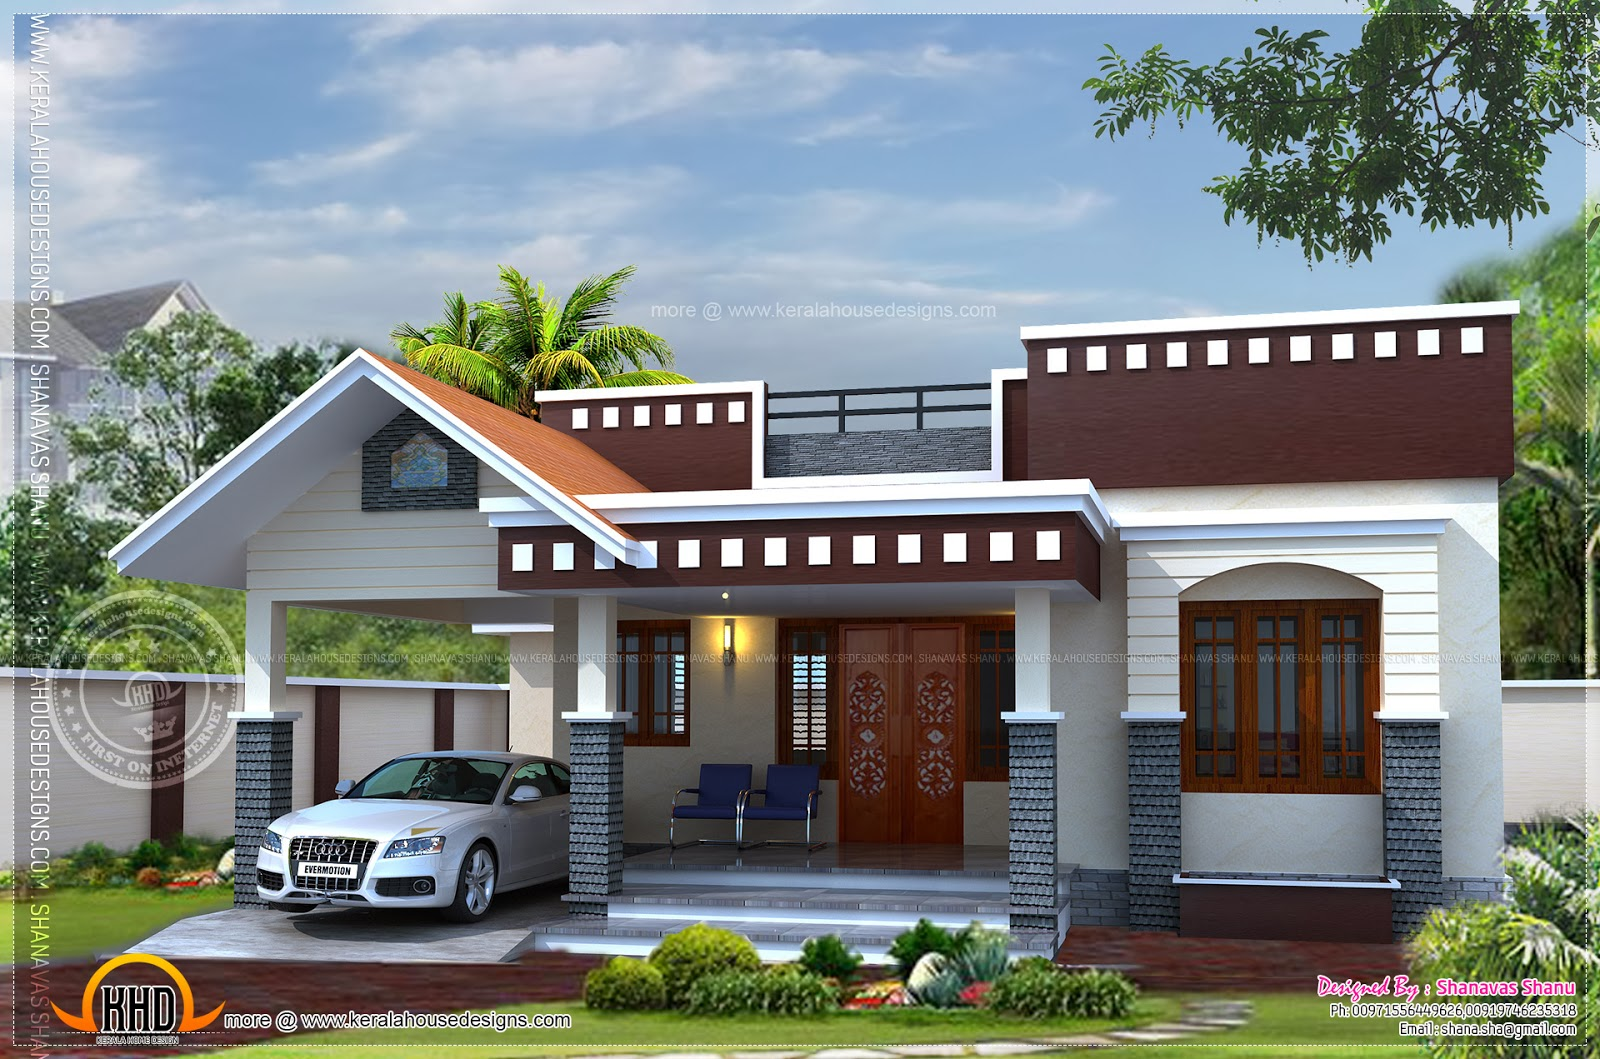 Single floor house plans small low cost economical 2 bedroom 2 bath 1200 sq ft single